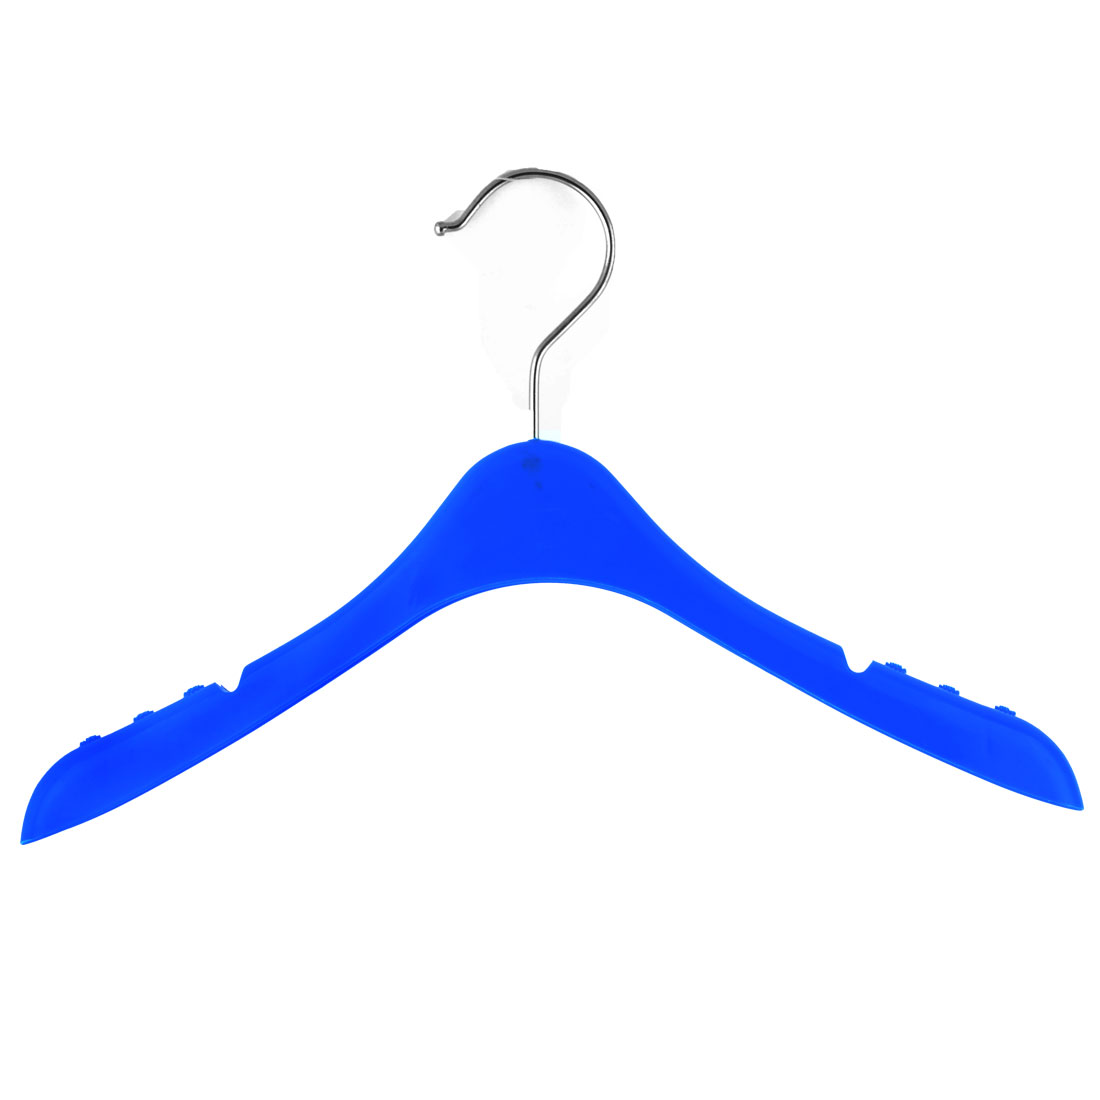 Household Plastic Nonslip Clothes Skirts Pants Trousers Towel Hangers Hooks Blue